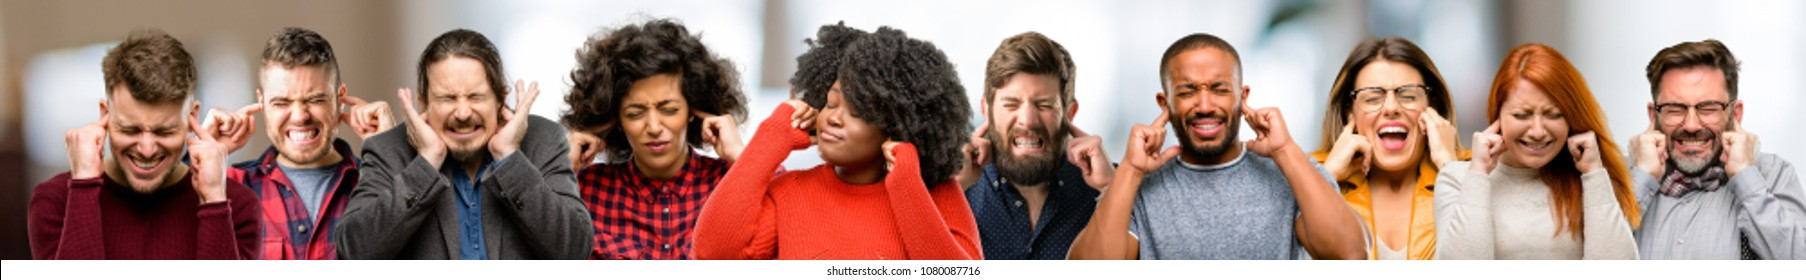 Group of people covering ears ignoring annoying loud noise, plugs ears to avoid hearing sound. Noisy music is a problem.